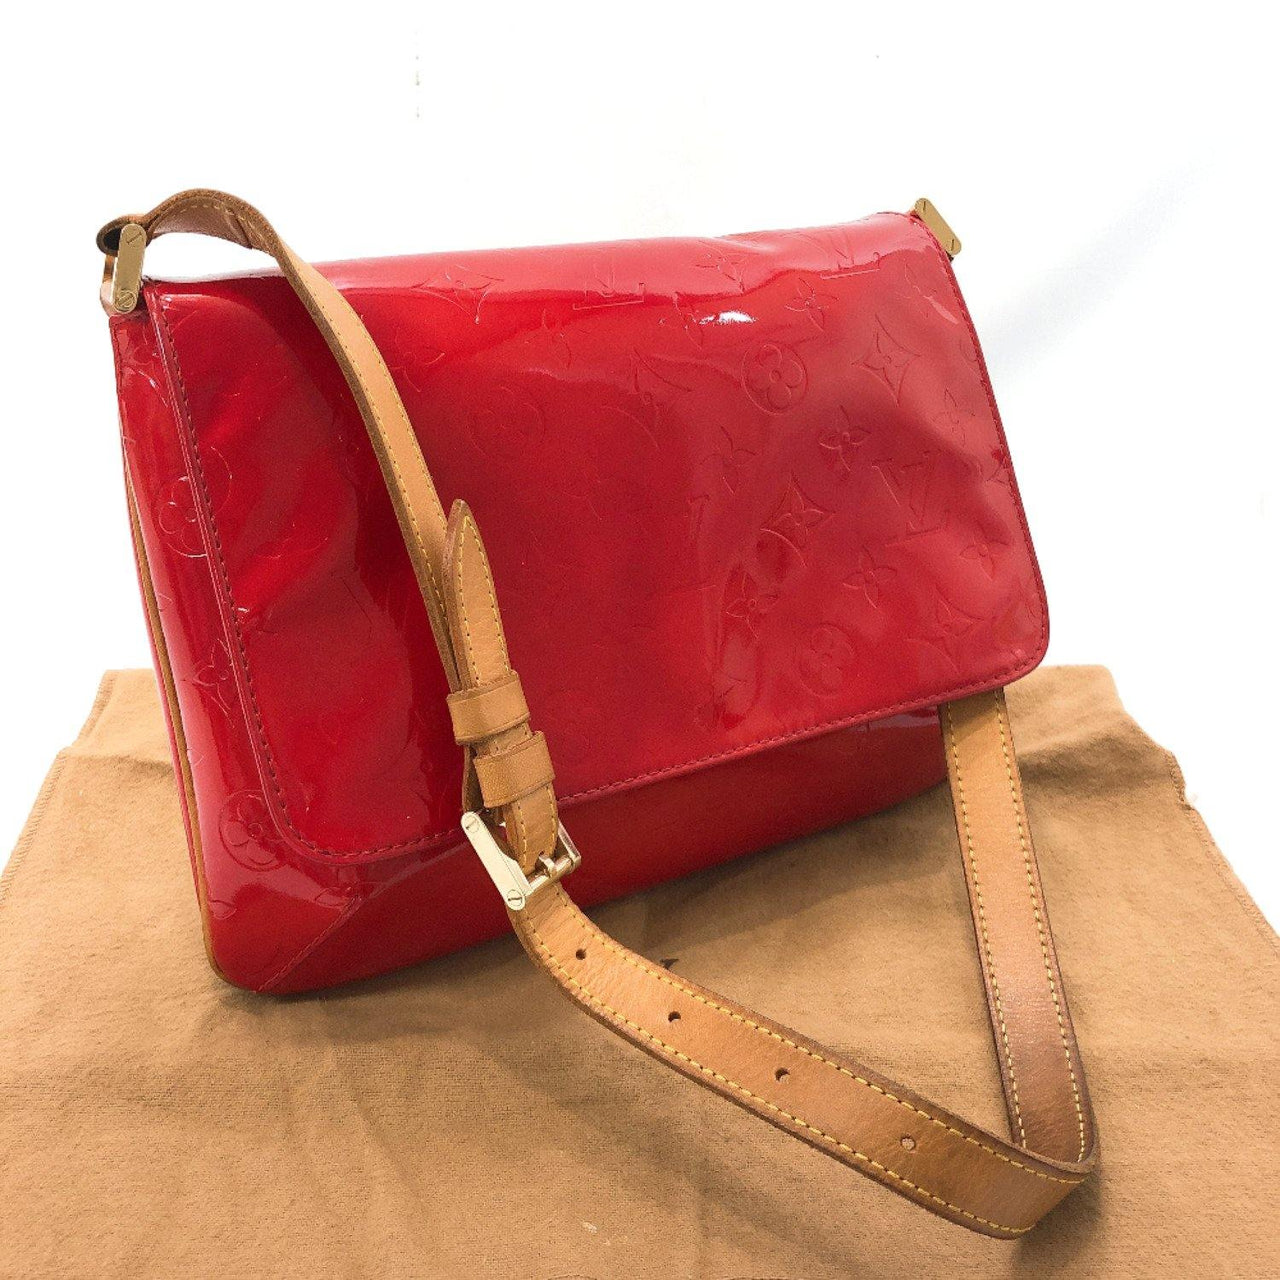 LOUIS VUITTON Shoulder Bag M91094 Thompson Street Monogram Vernis/Leather Red Women Used